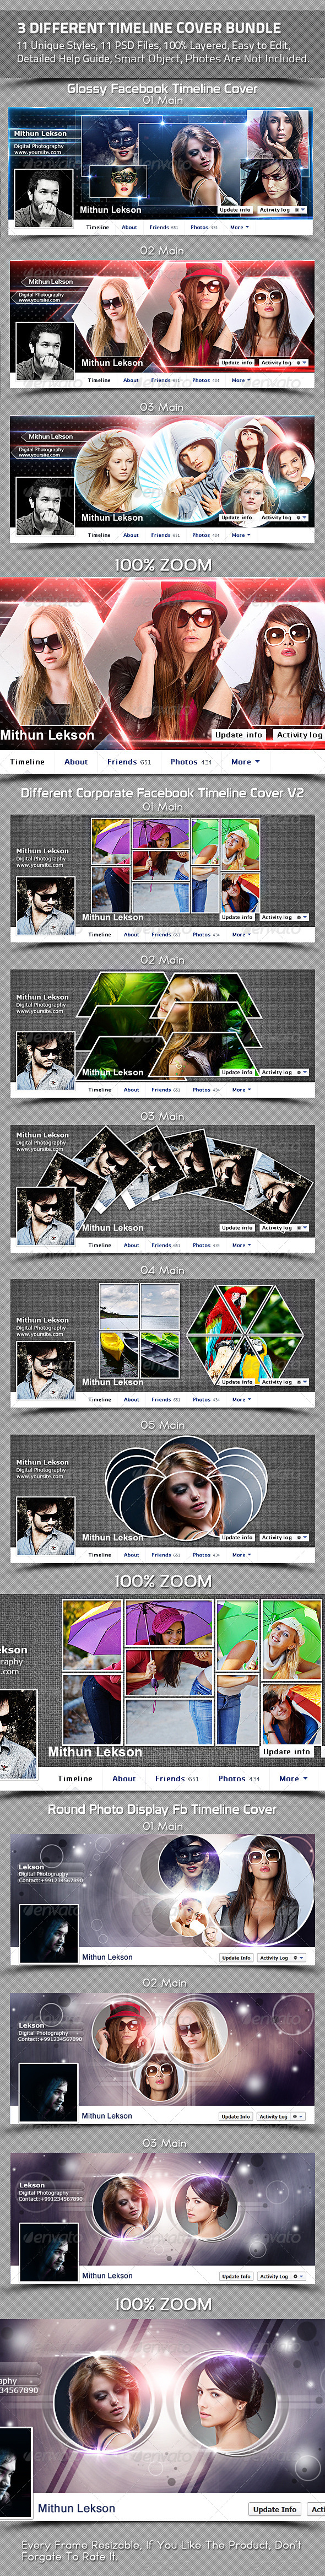 3 Different Facebook Timeline Cover Bundle - Facebook Timeline Covers Social Media